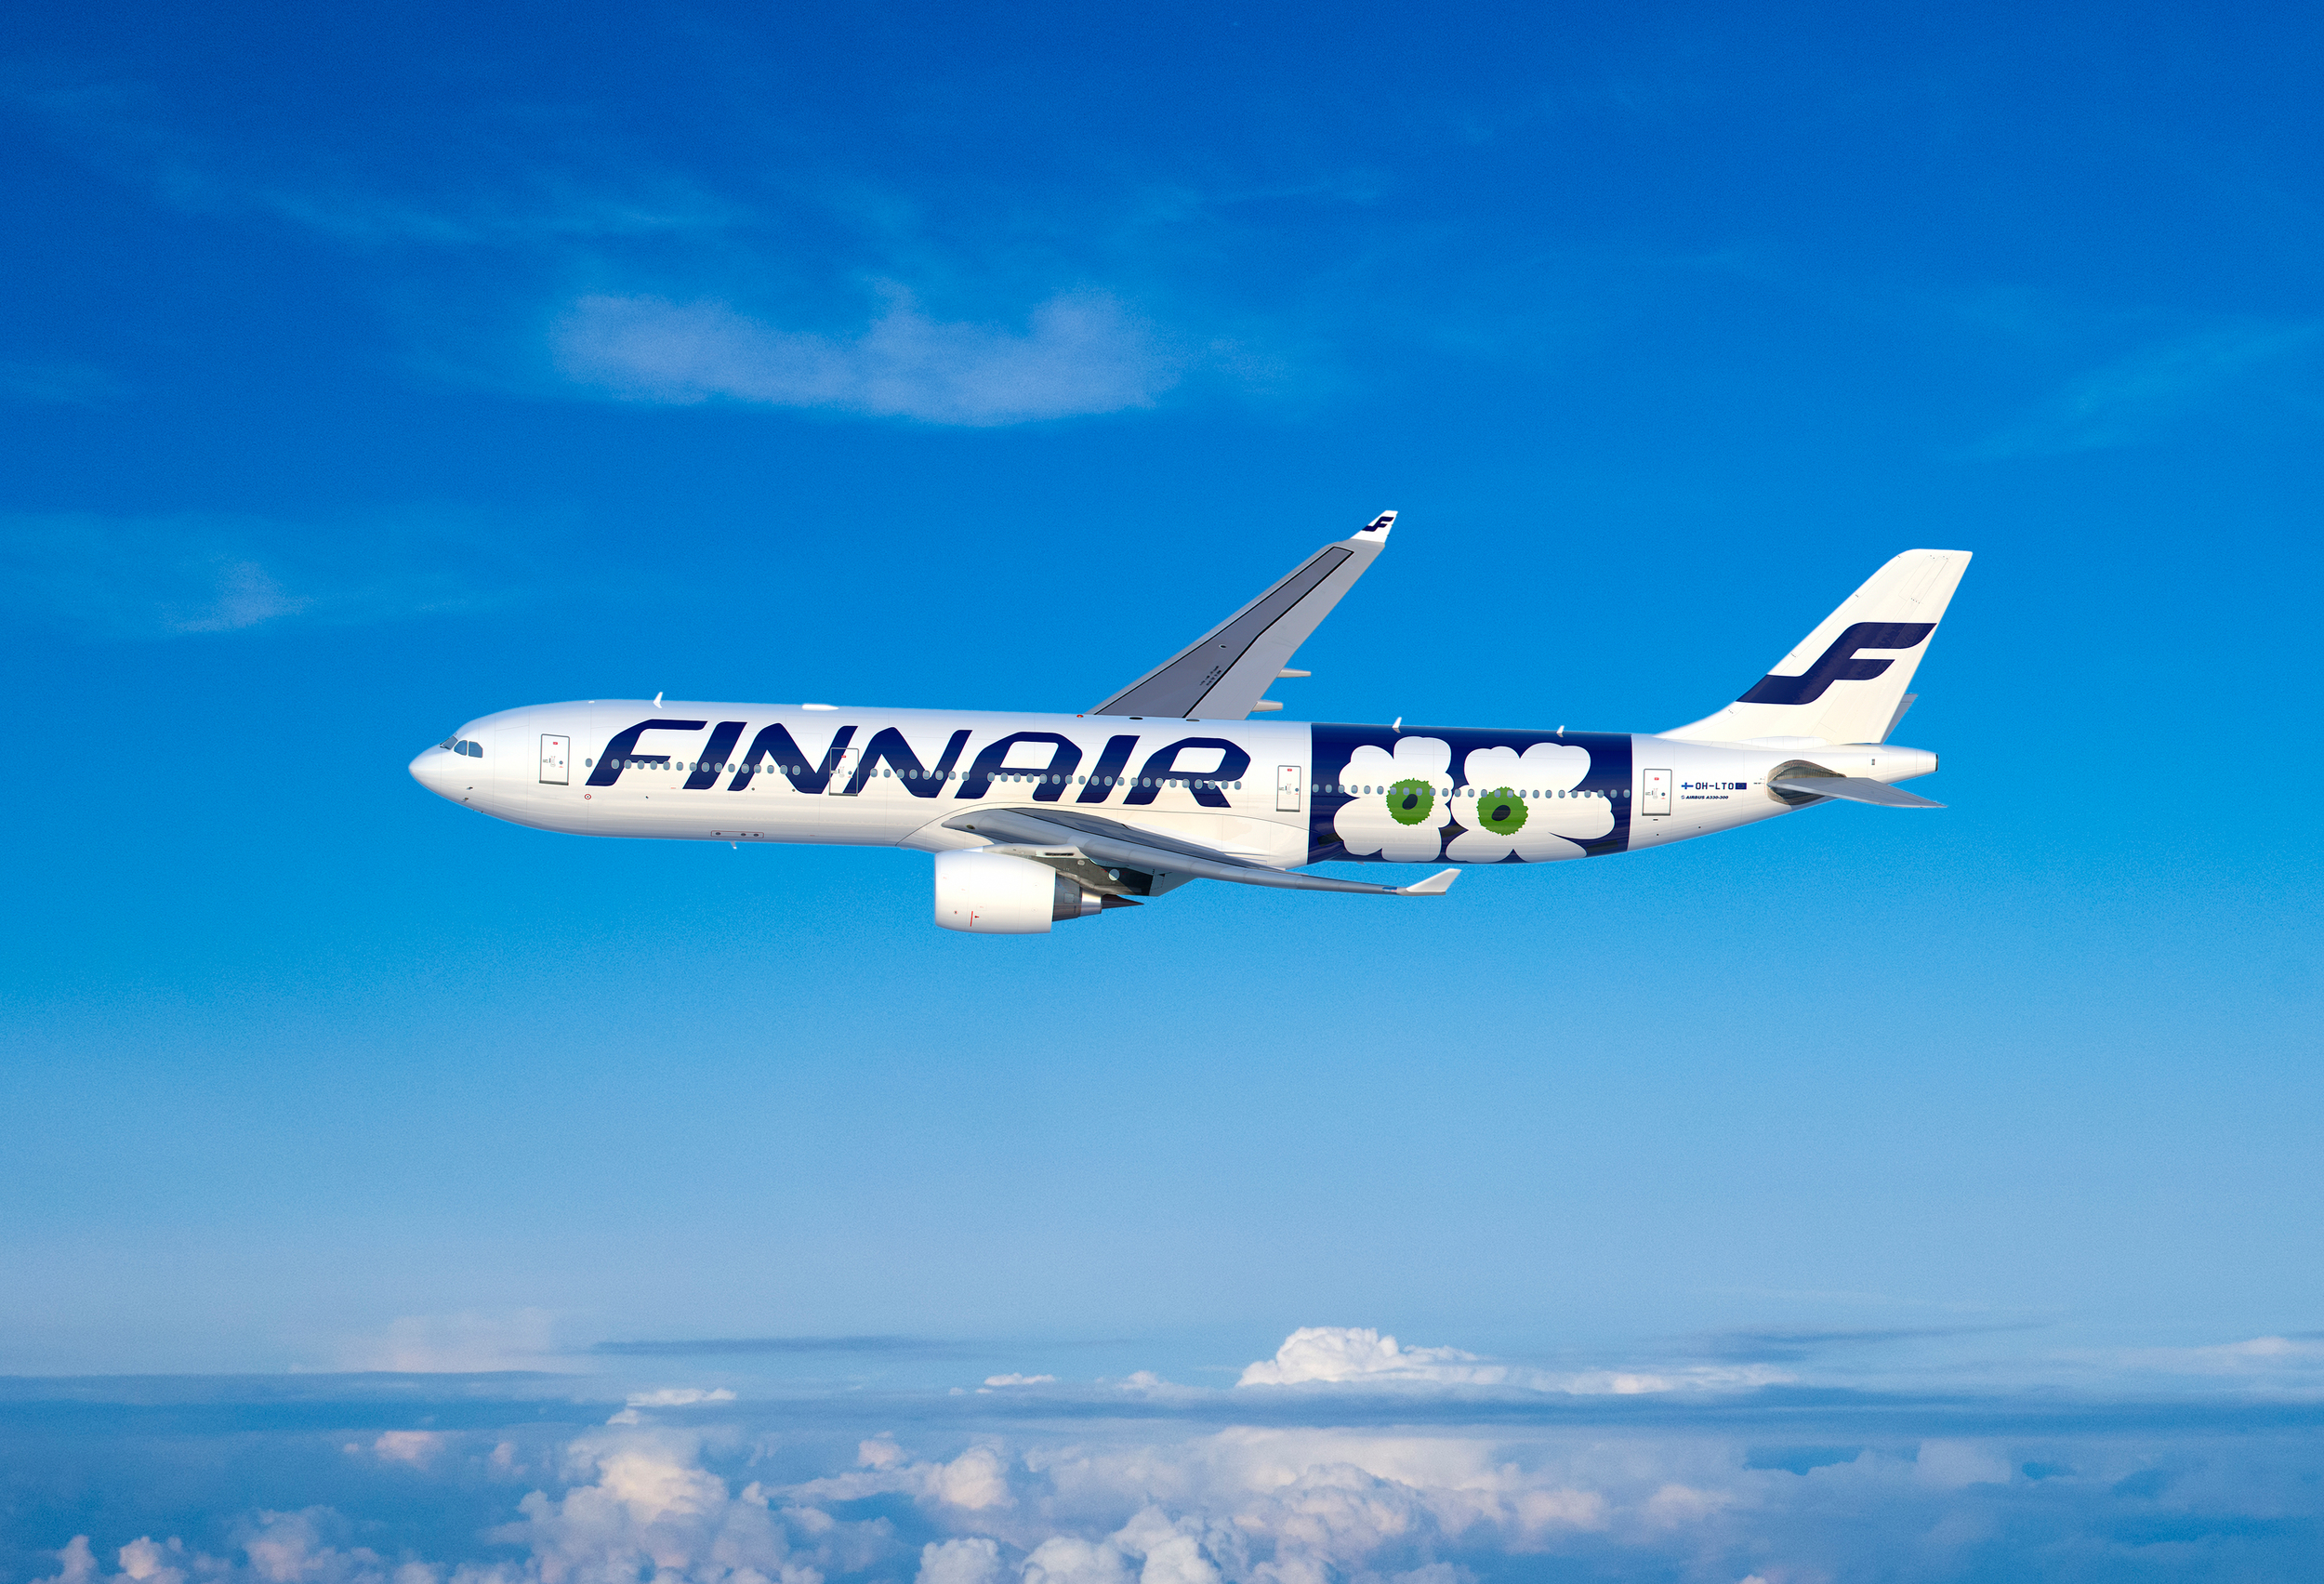 Finnair's A330s fly mainly routes to Asia and to New York from Helsinki Vaanta. Picture: Finnair